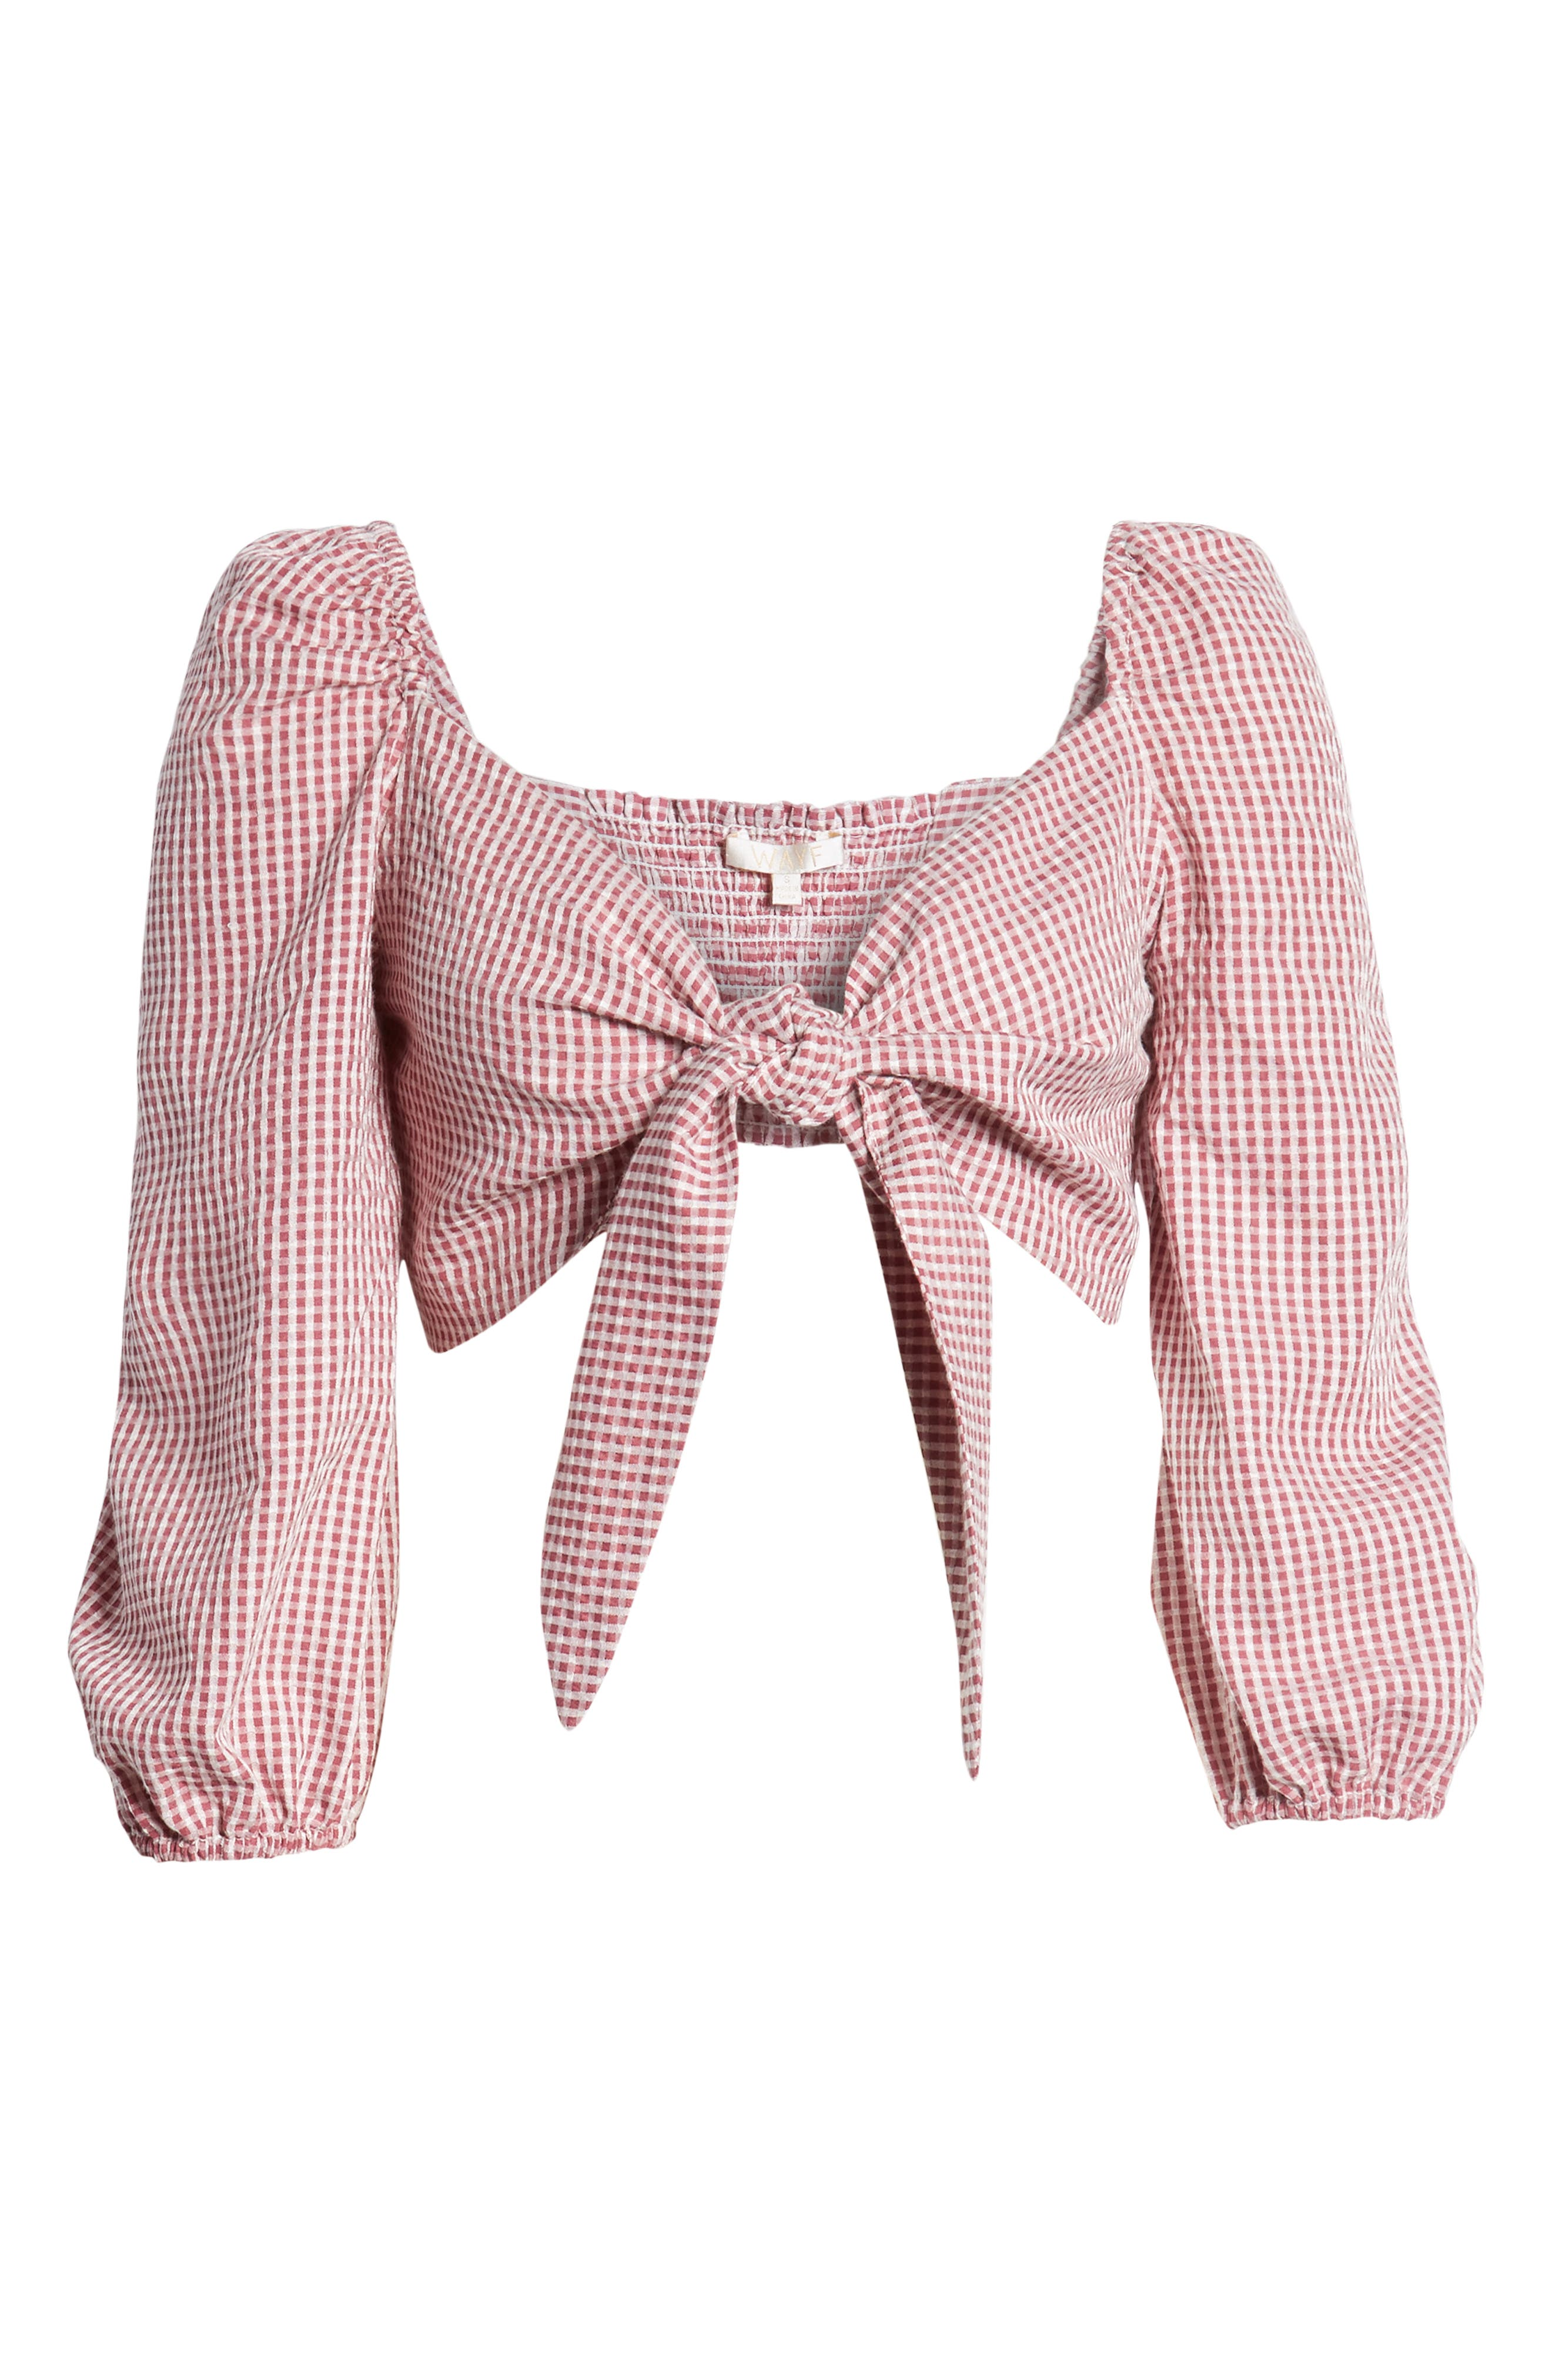 Digby Tie Front Crop Top,                             Alternate thumbnail 8, color,                             Red Gingham